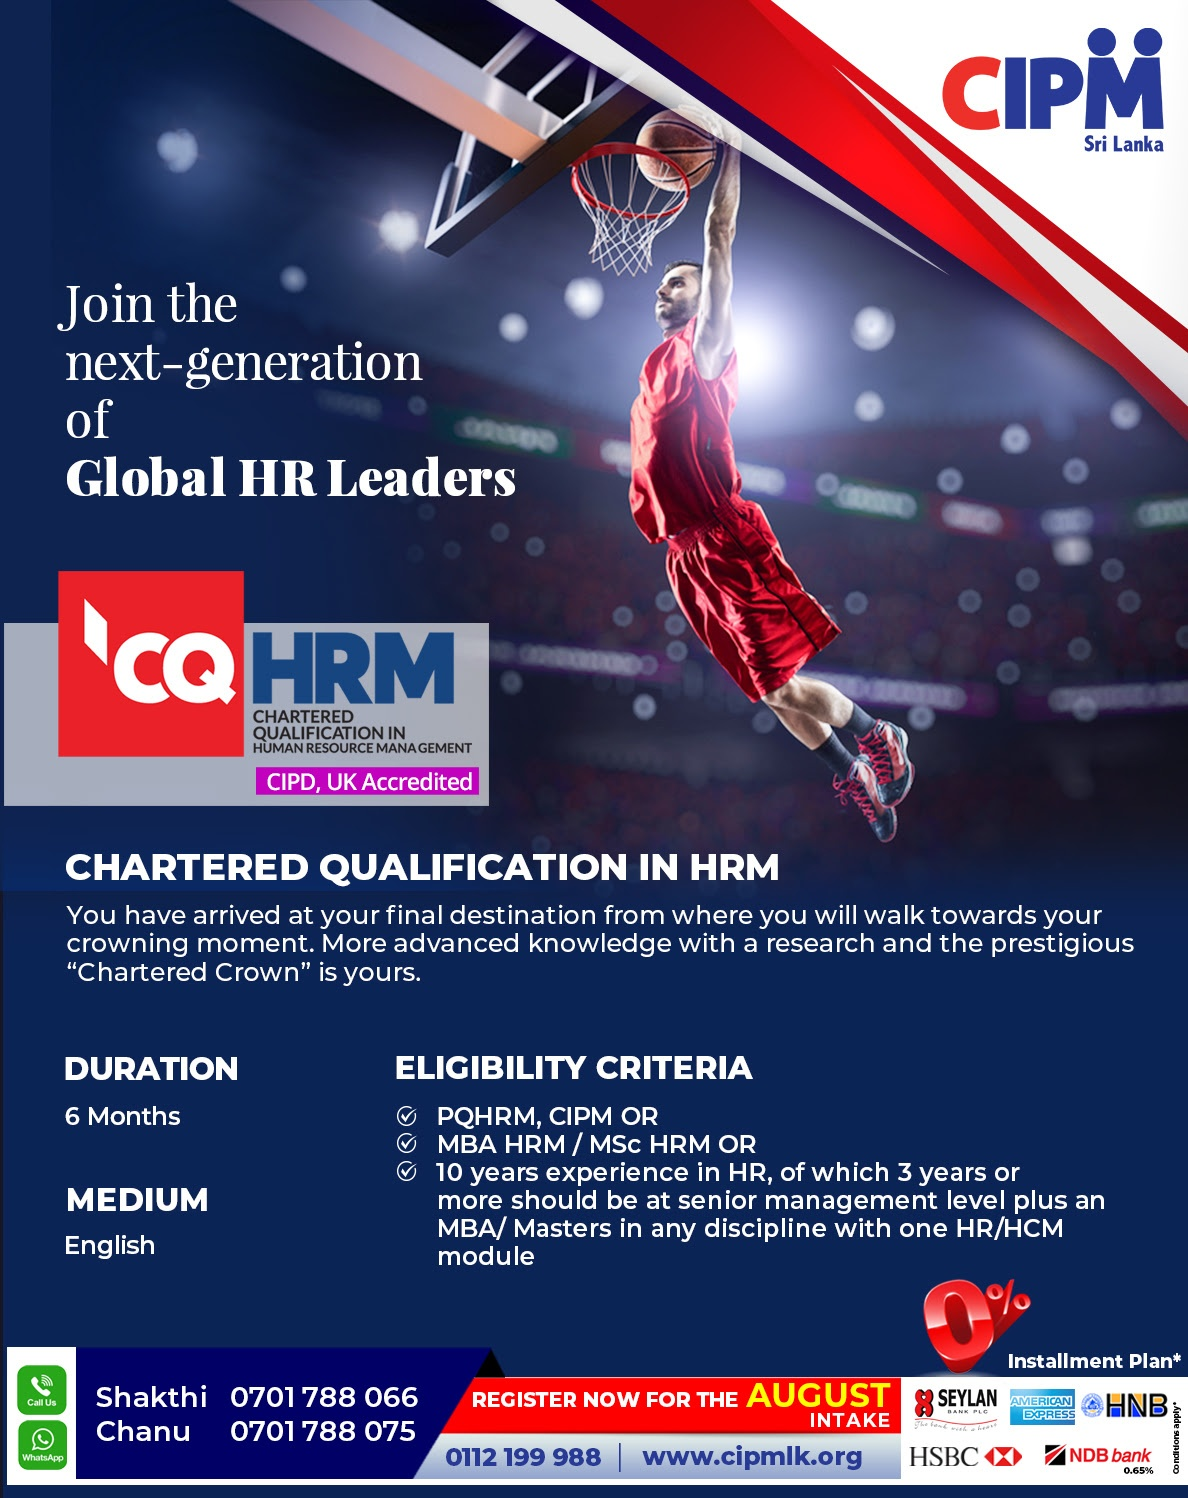 Join the next generation of Global HR Leaders